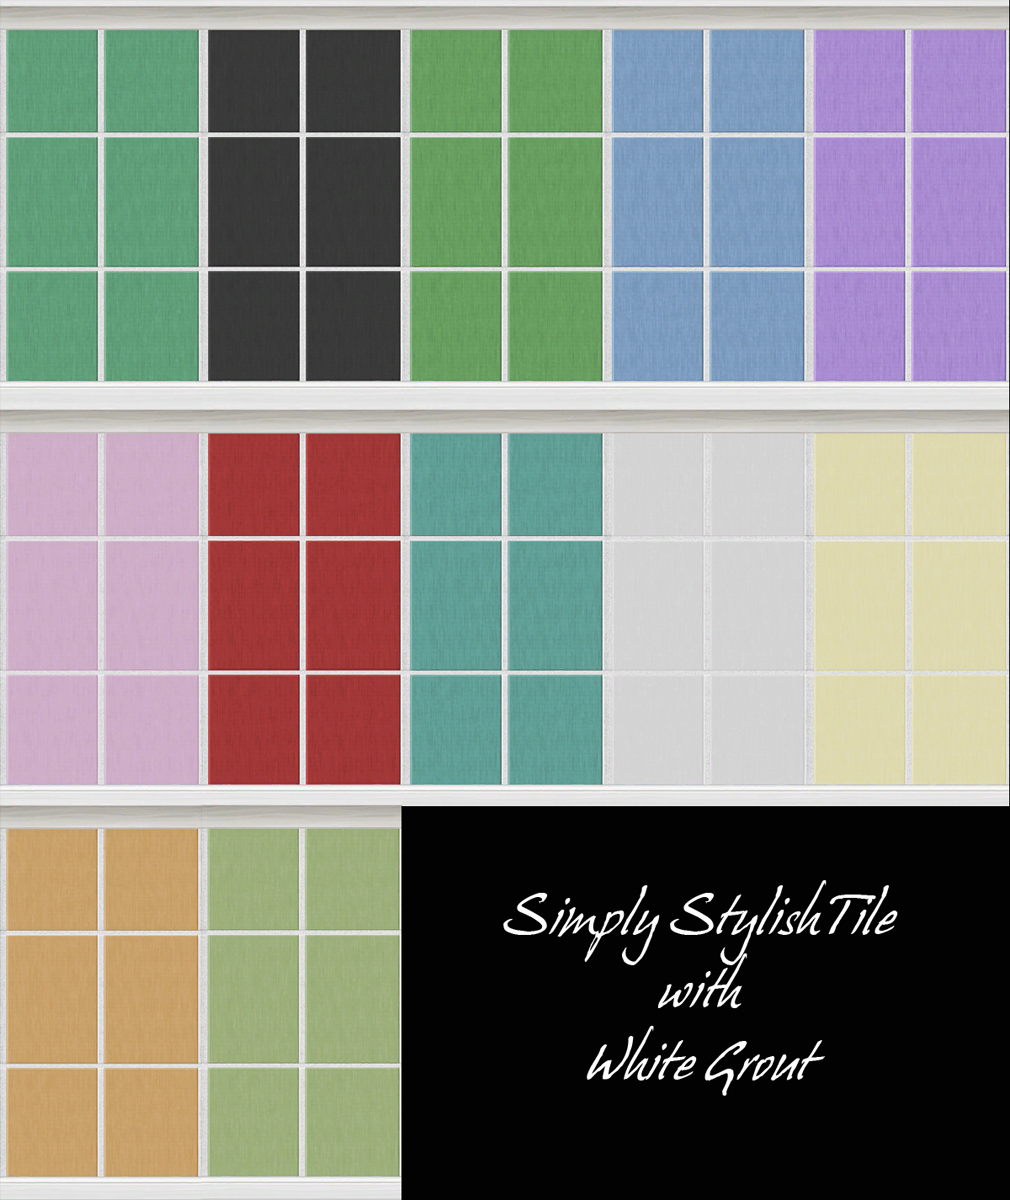 Mod The Sims - Wall Tiles - Simply Stylish in 2 Versions